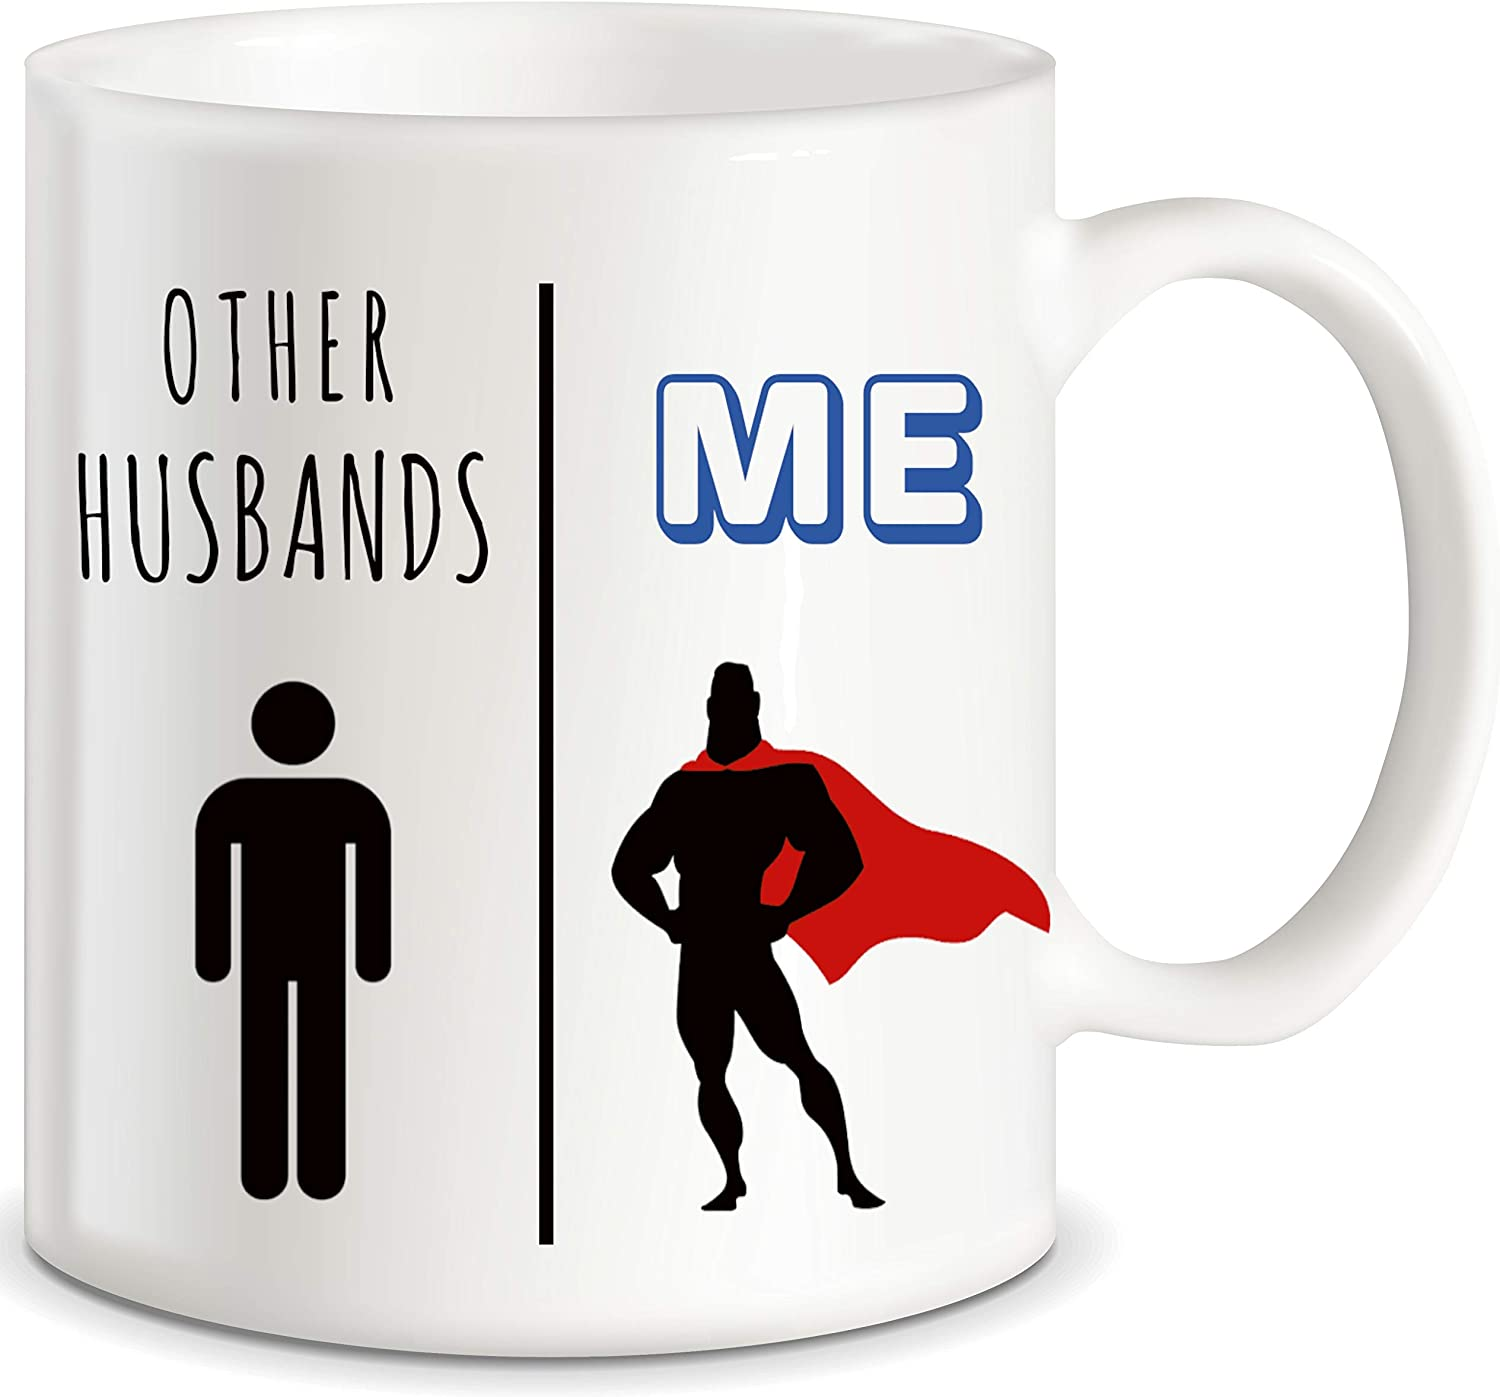 CLASSIC Max 71% OFF MUGS My Husband Vs Other Mug Funny Gift Sale special price Coffee Husbands